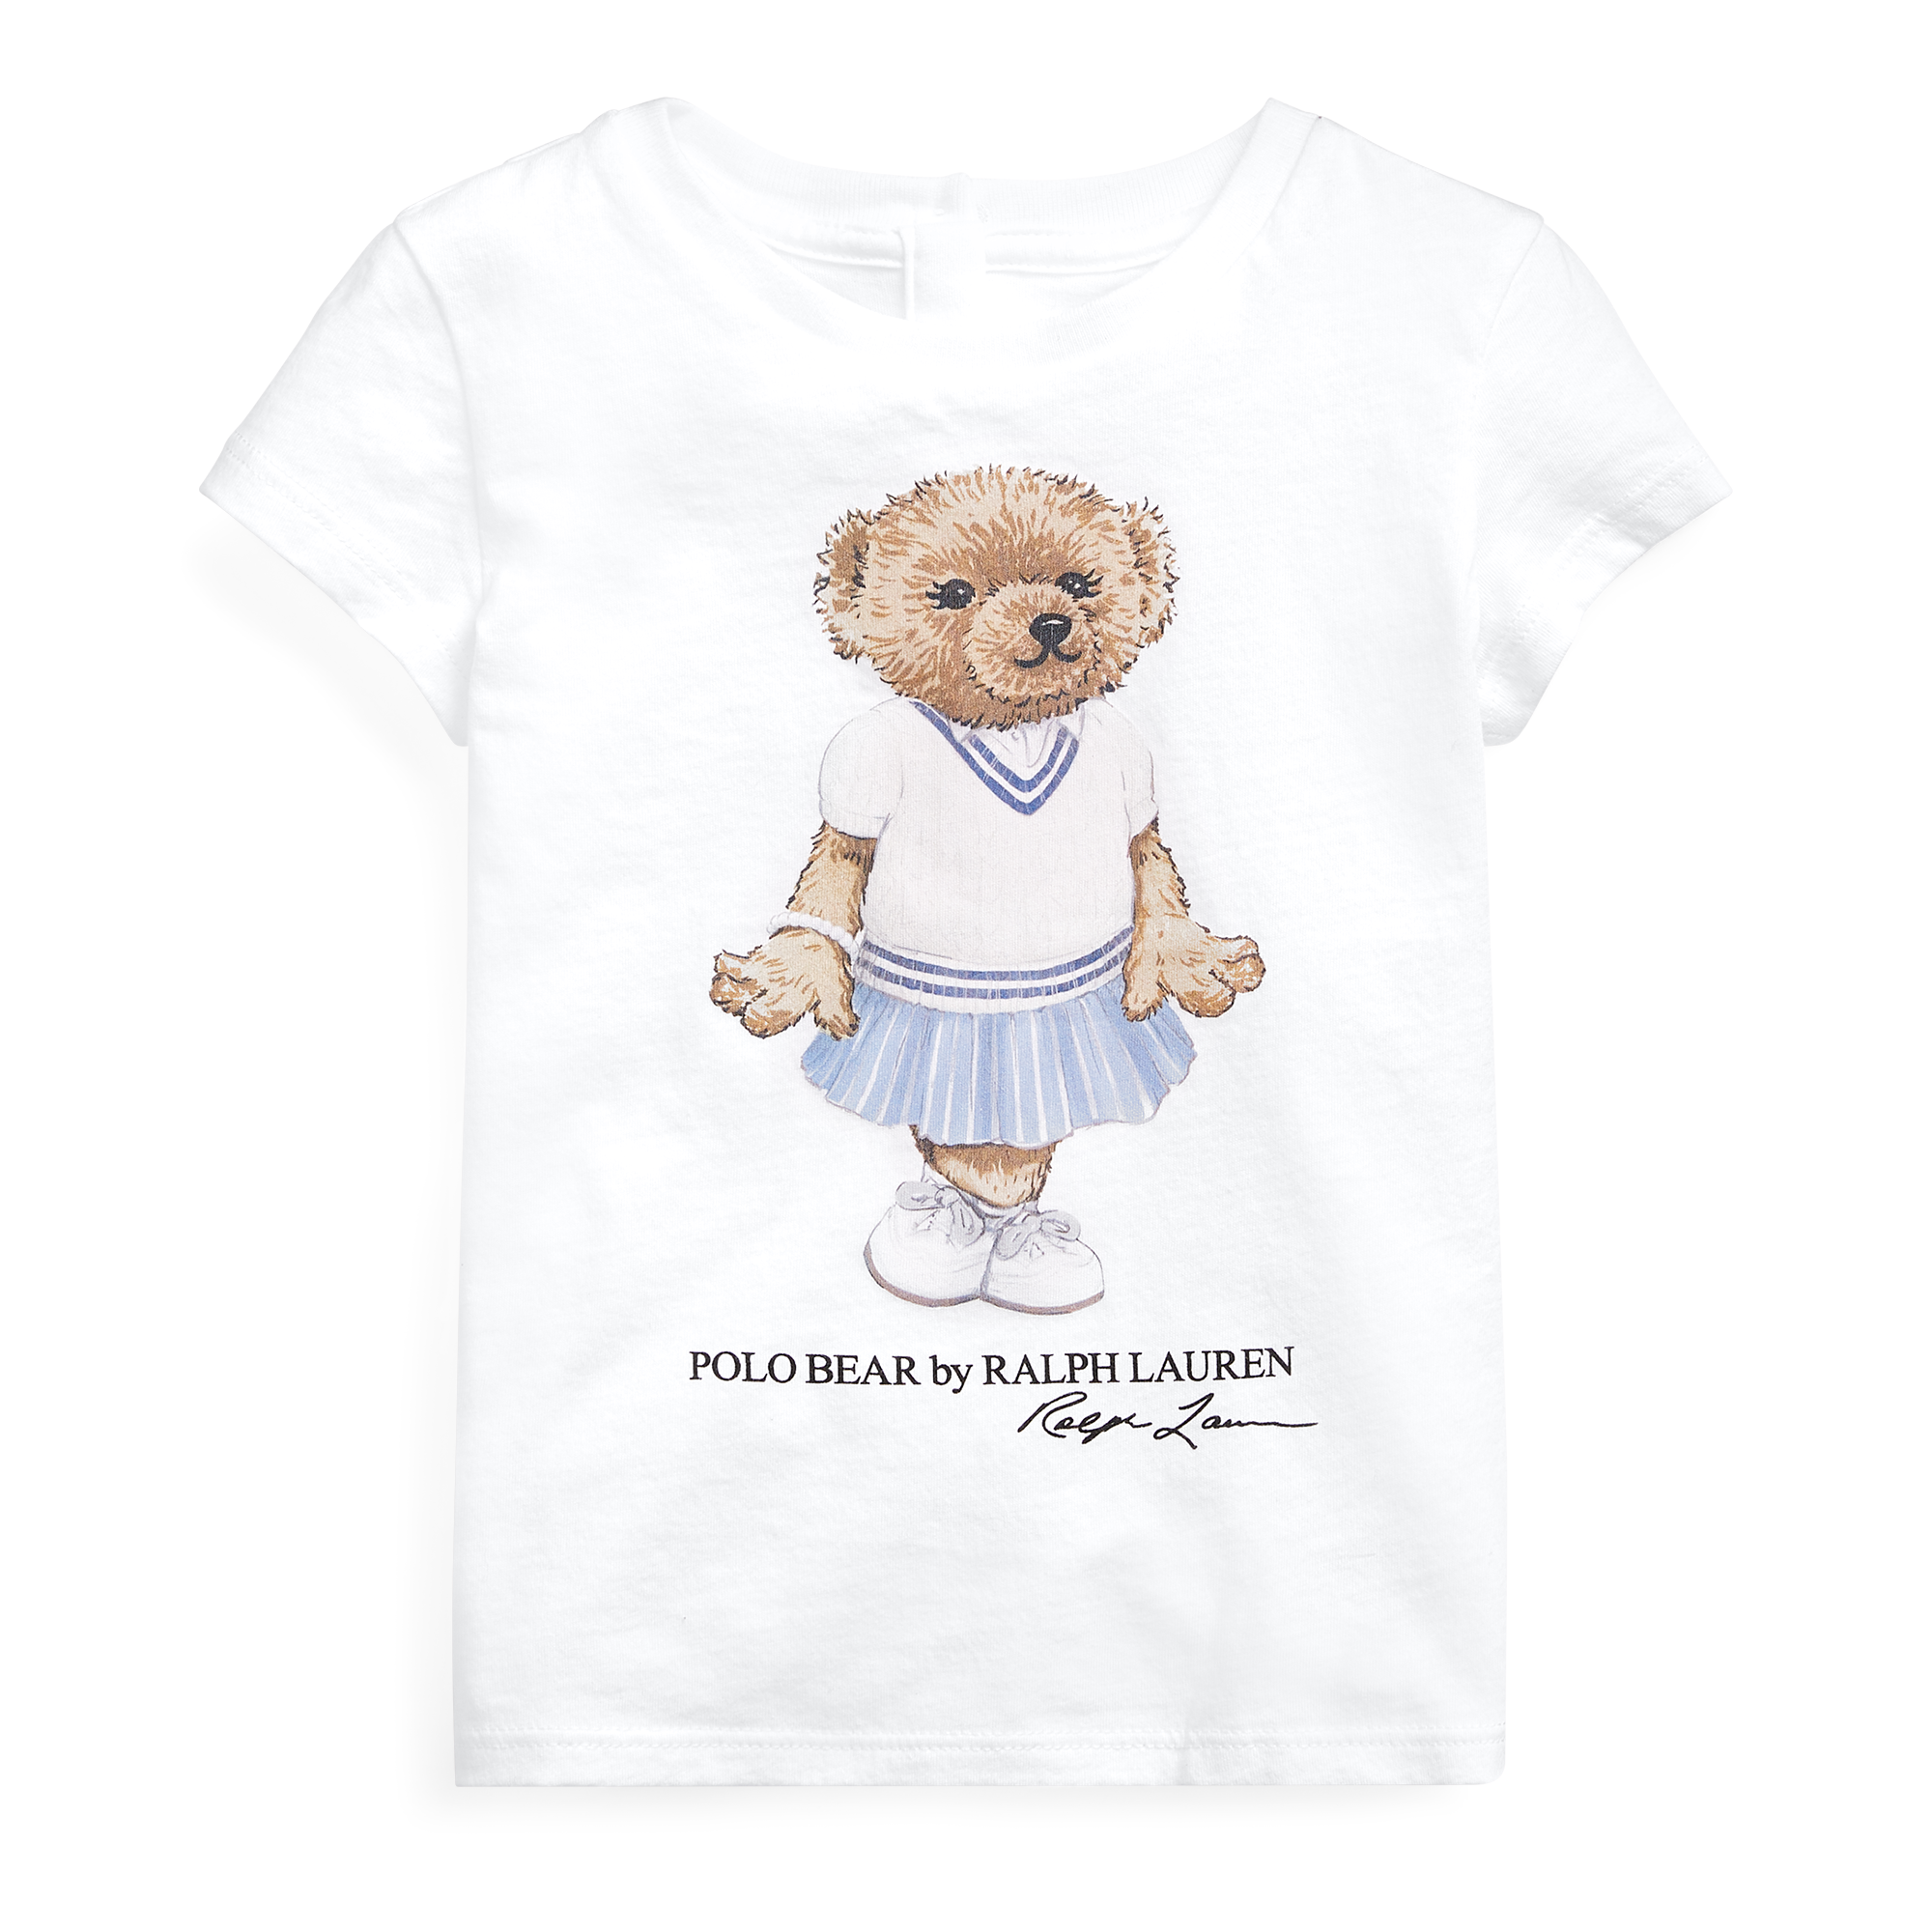 70dc584fb Cricket Bear Cotton Jersey Tee. RalphLauren RalphLauren. 54.99 22.50 $